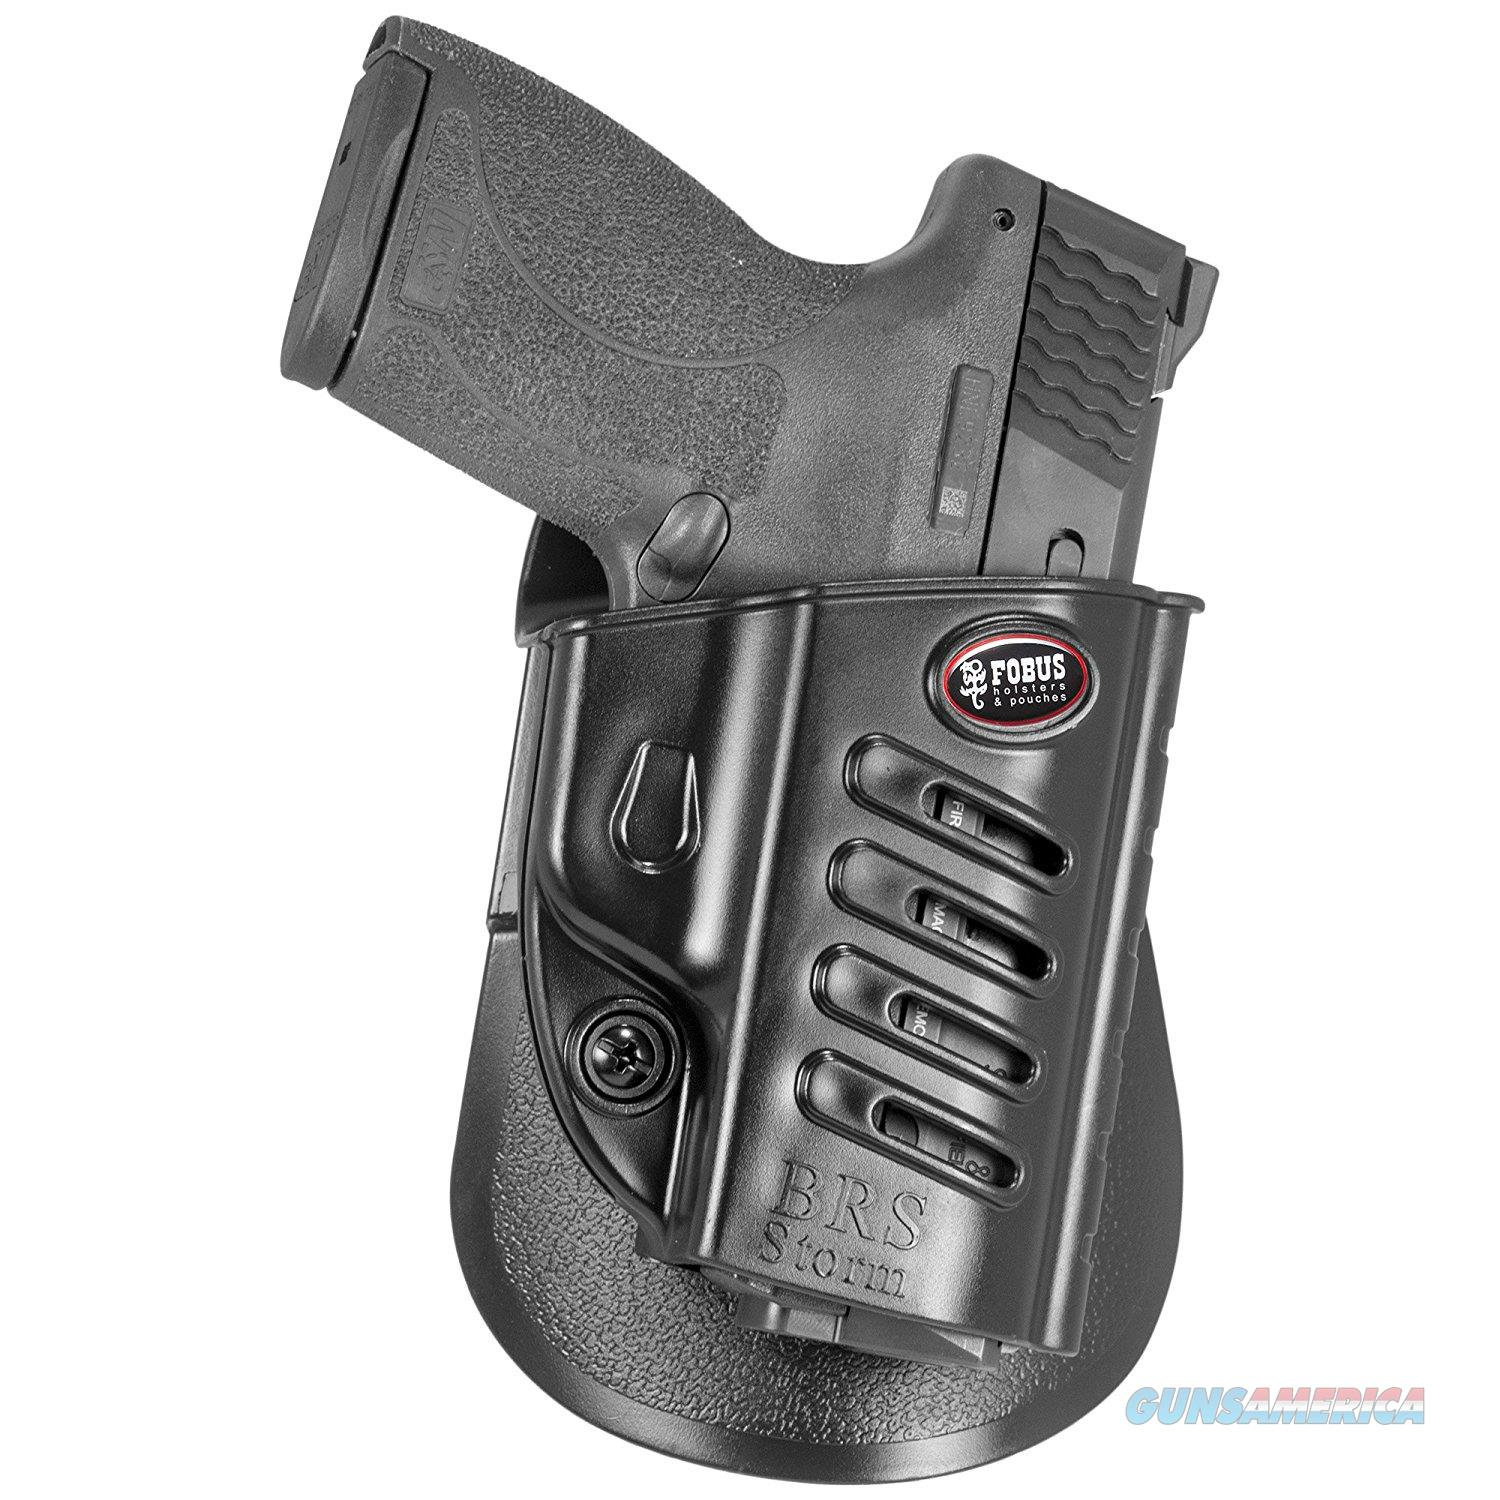 Fobus Evolution Holster Beretta PX4 Storm  Non-Guns > Holsters and Gunleather > Concealed Carry